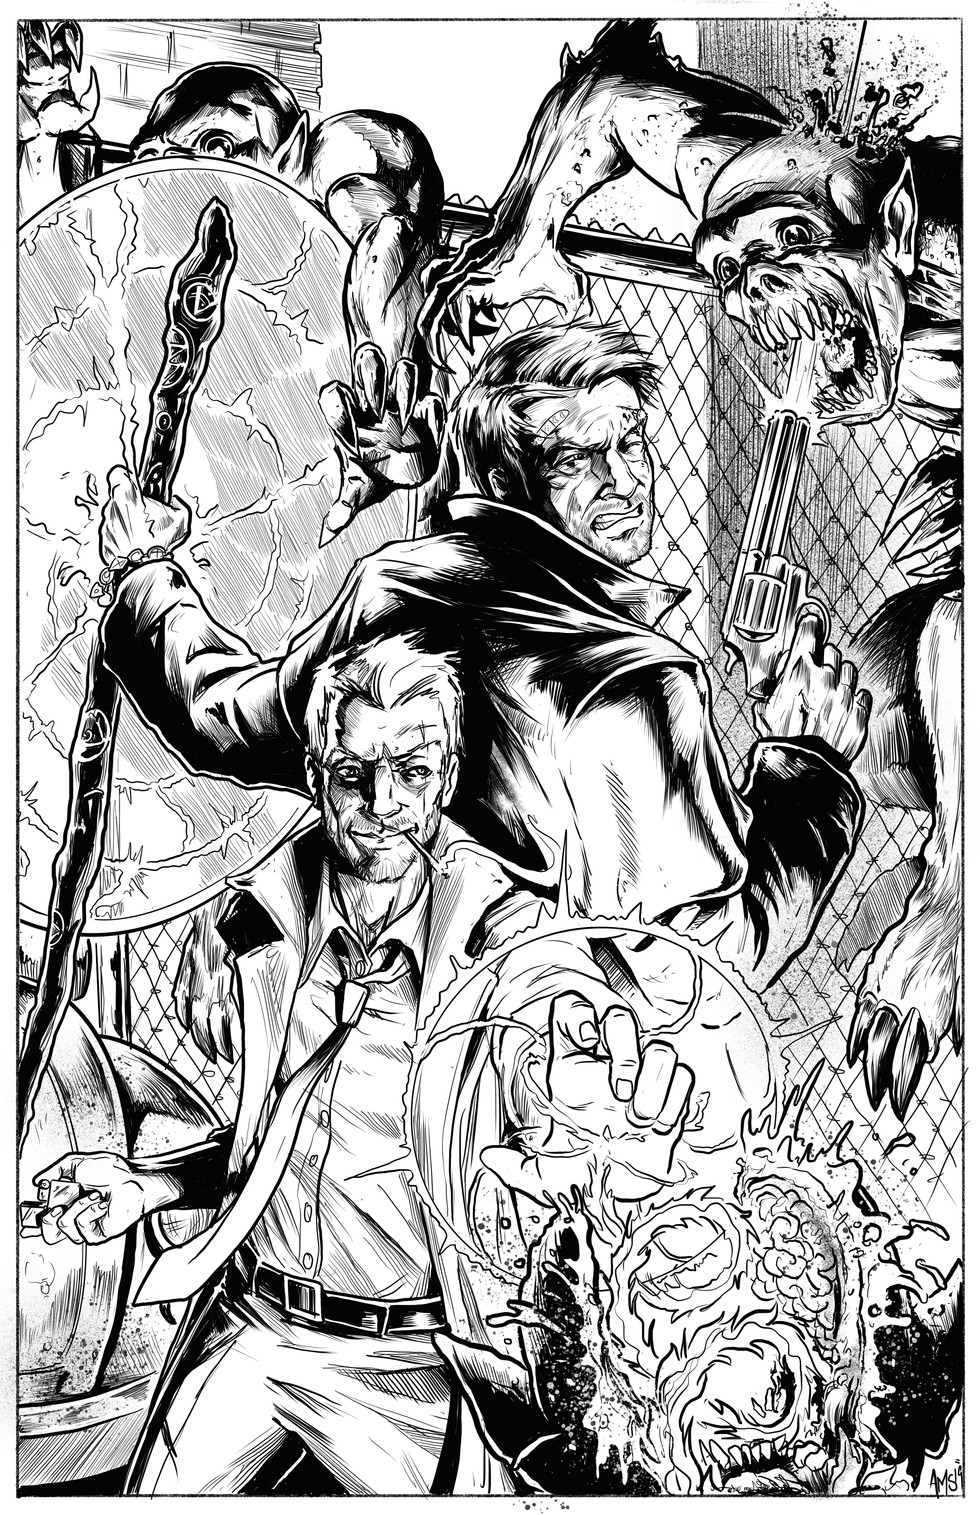 Harry and John Constantine